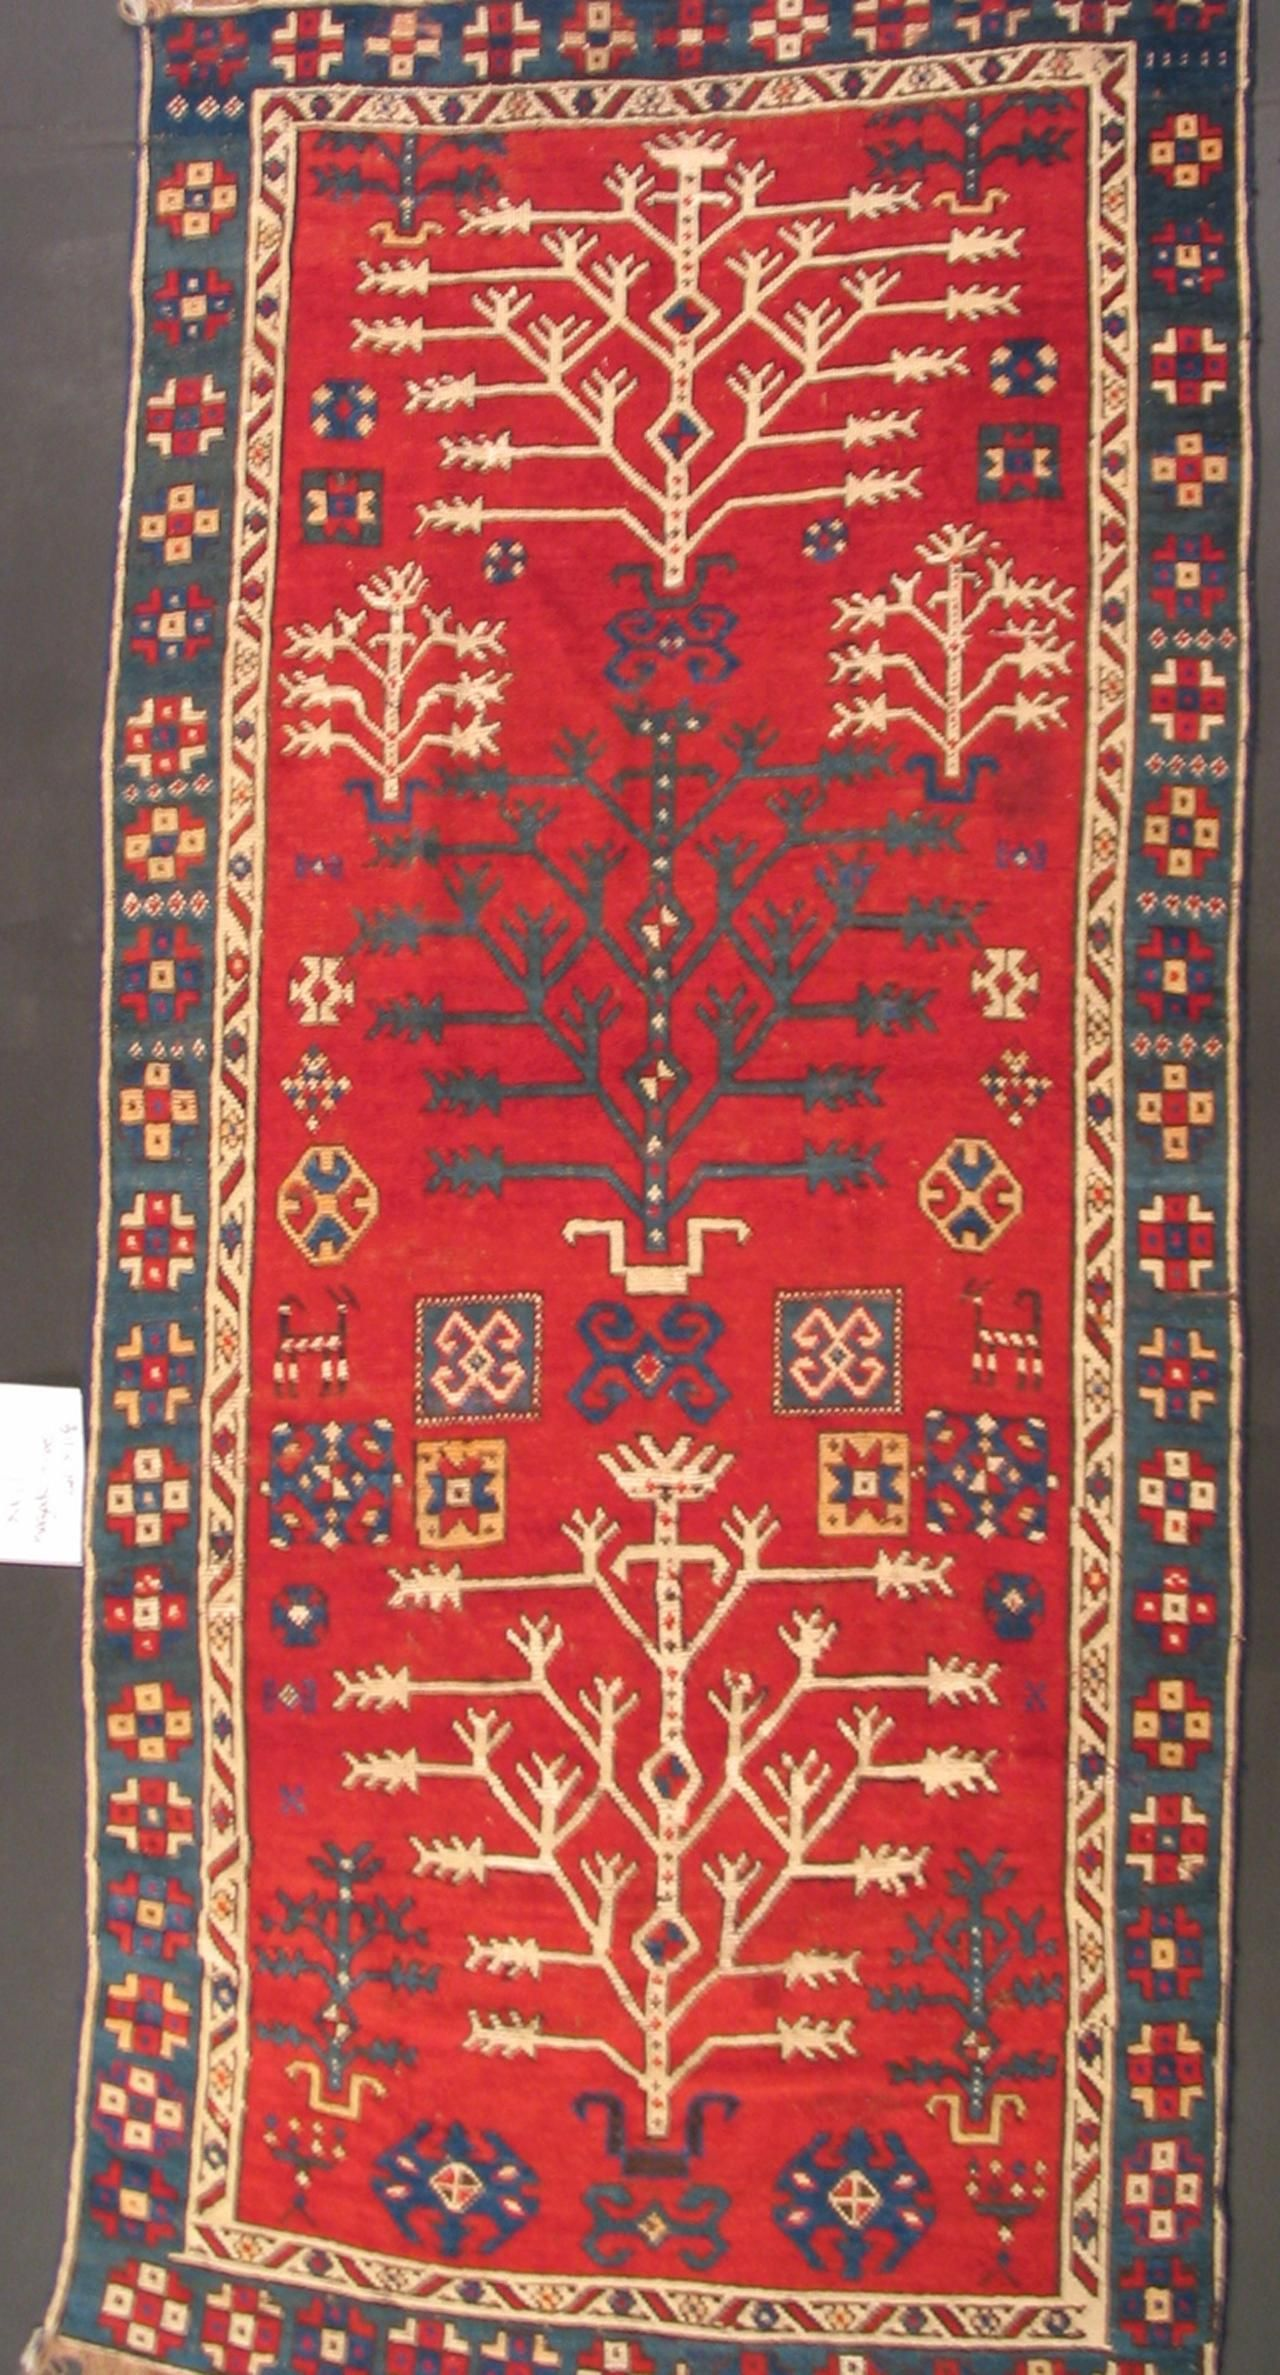 Runner Tree Kazak Circa 1875 Dimensions 260 X 118 Cm 102 3 8 X 46 7 16 In University Of Calgary With Images Rugs Rugs On Carpet Carpet Handmade